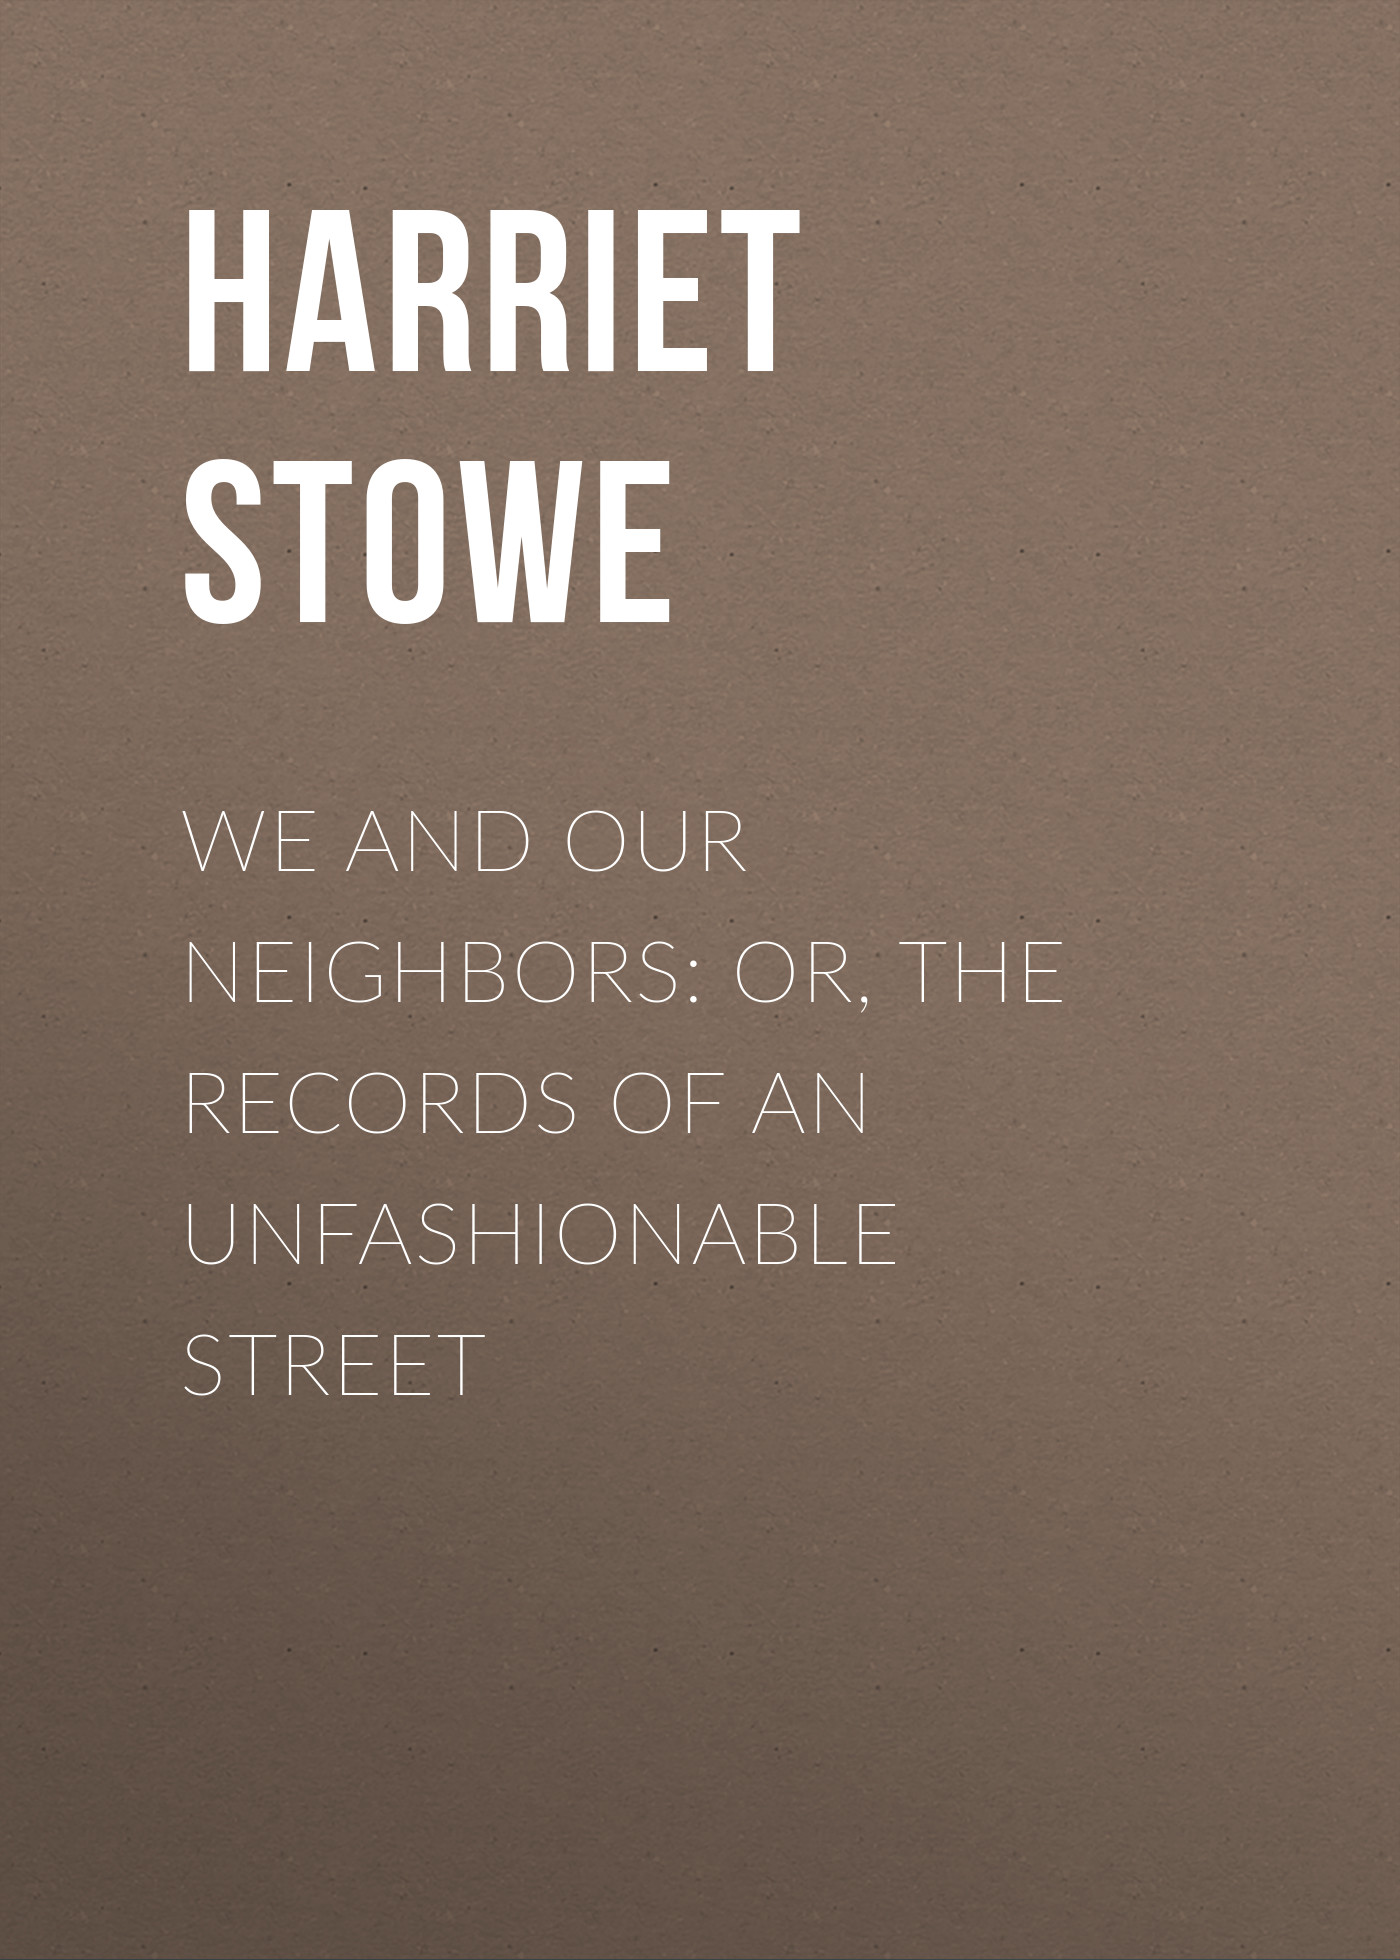 we and our neighbors or the records of an unfashionable street